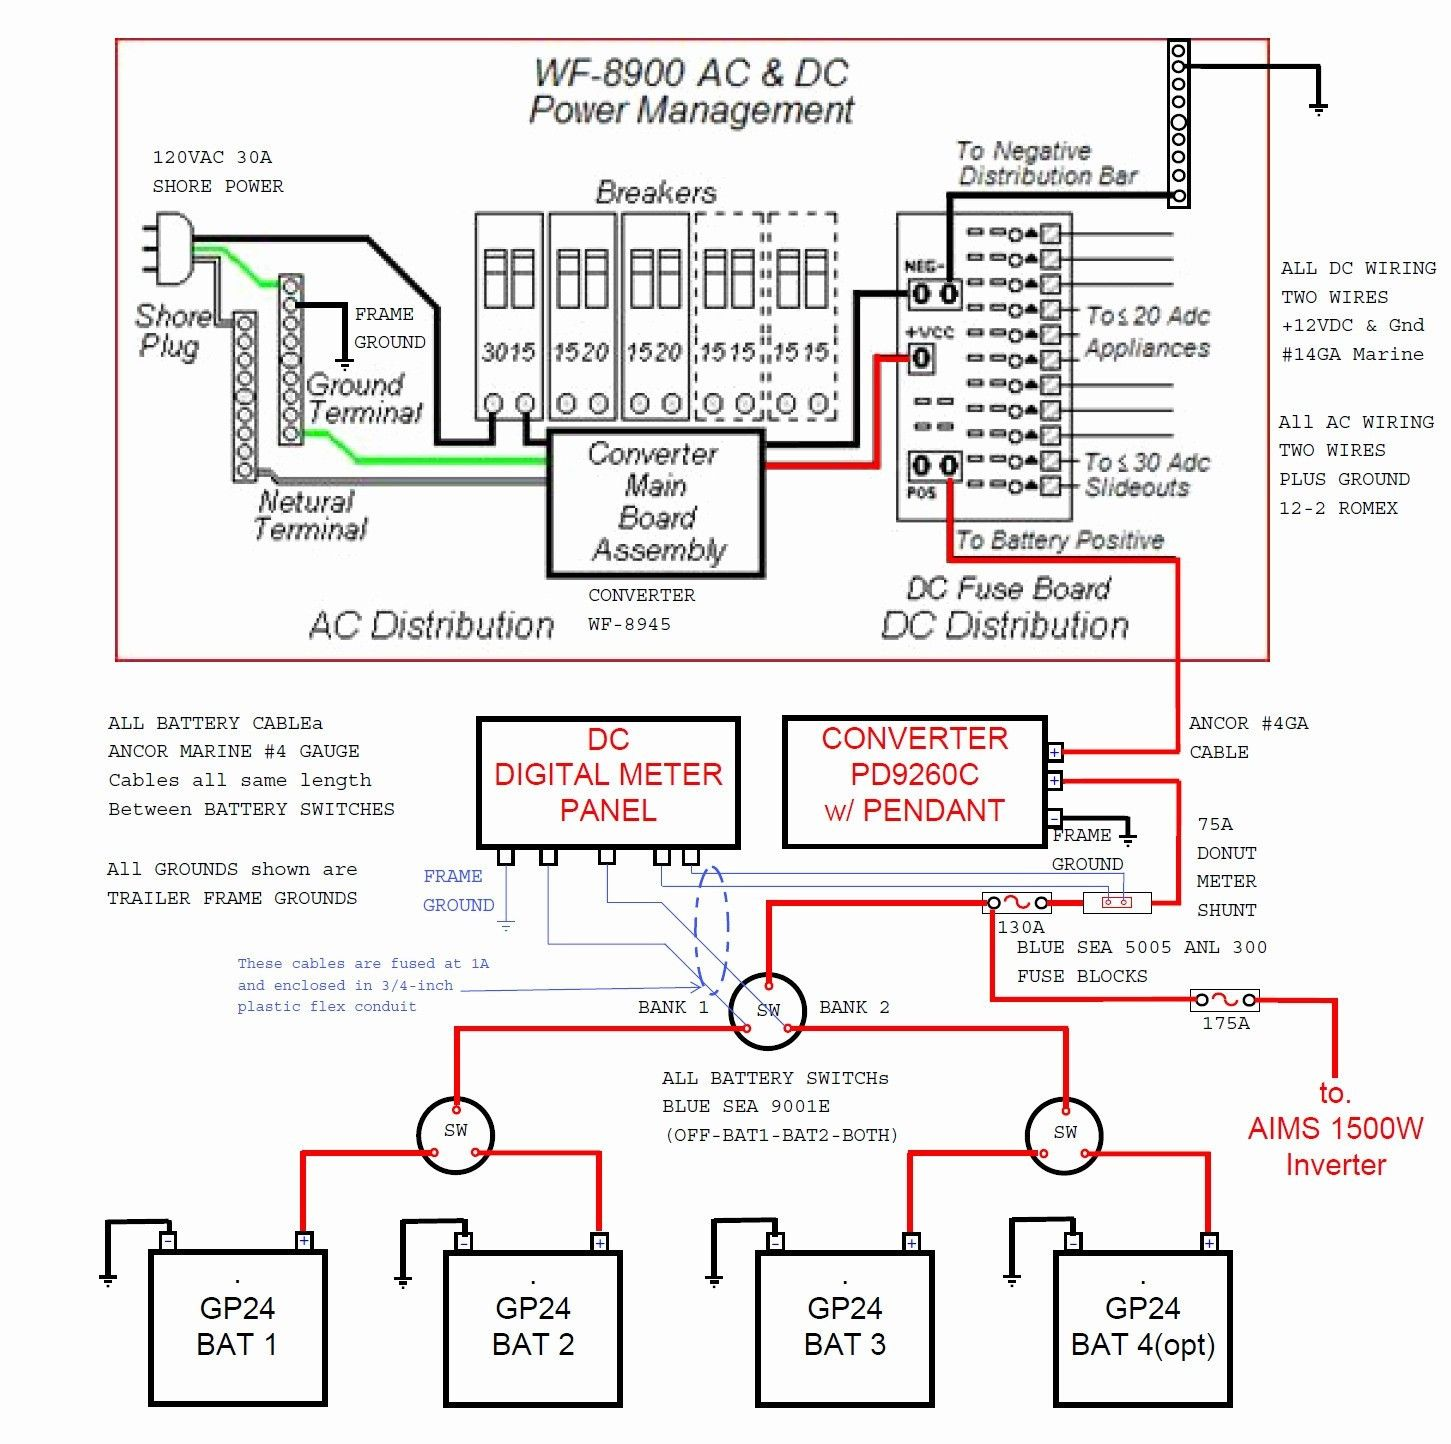 fleetwood camper wiring schematic rv wiring schematic e3 wiring diagram  rv wiring schematic e3 wiring diagram